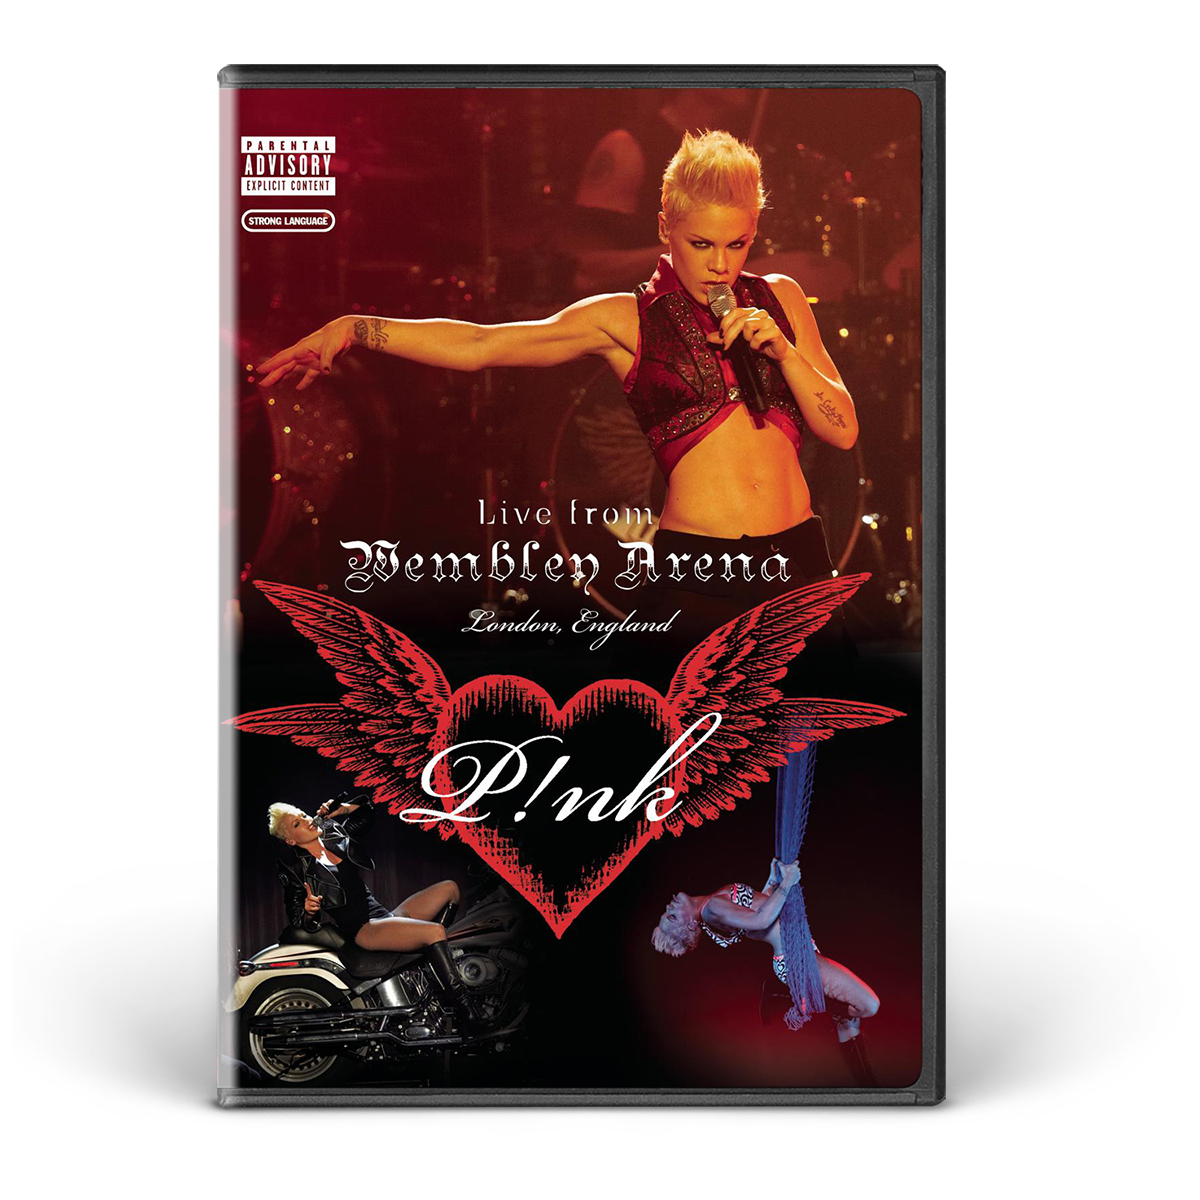 Live From Wembley Arena, London, England DVD [Explicit]